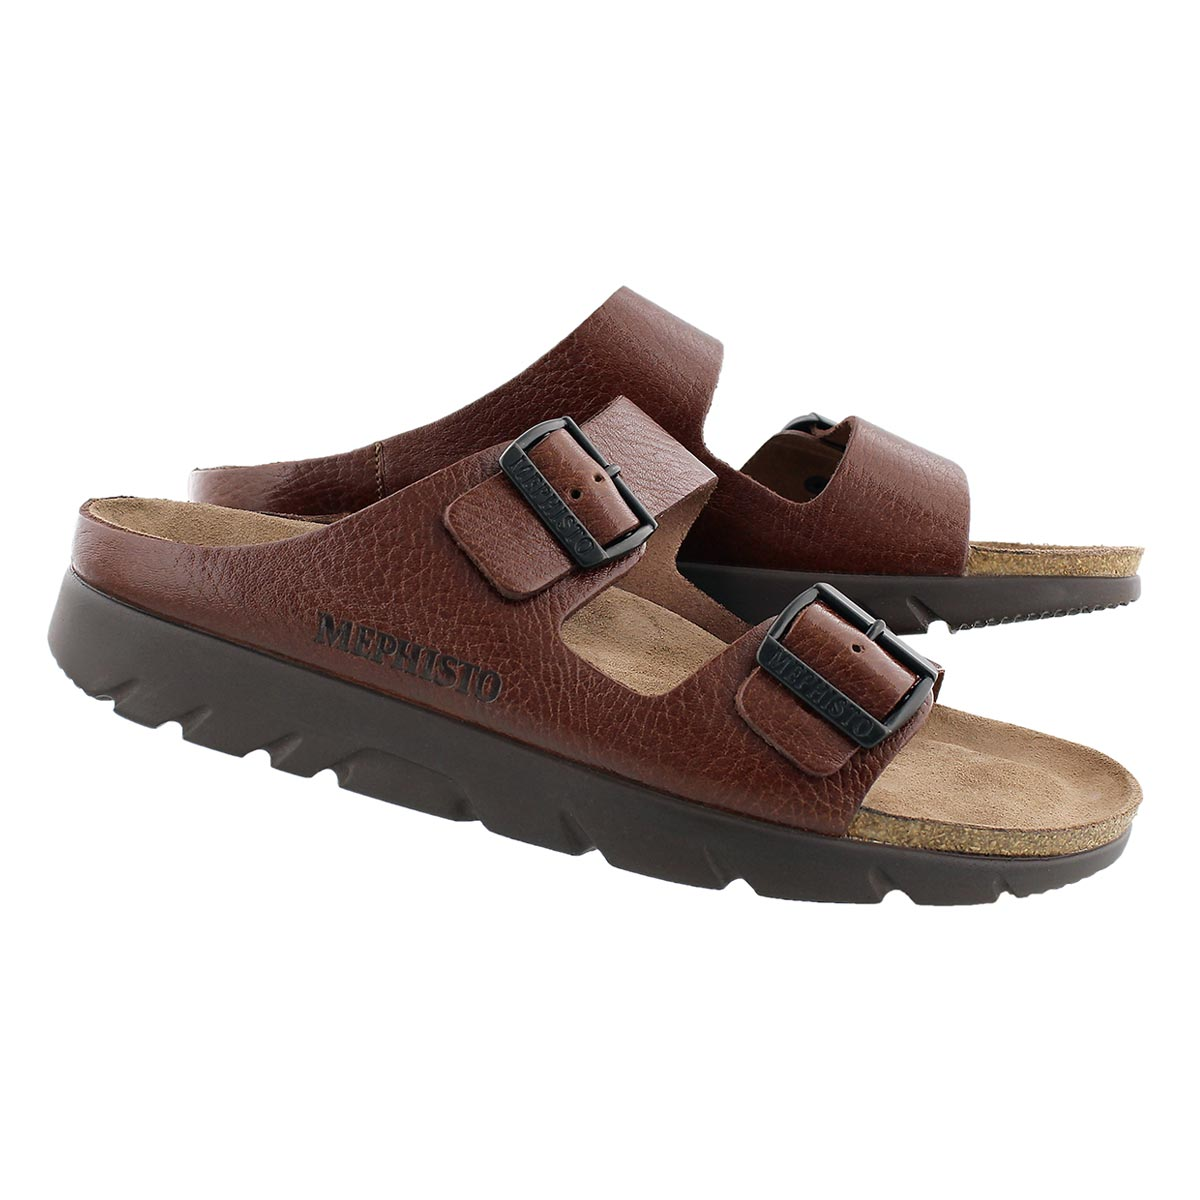 Mns Zonder tan cork footbed sandal